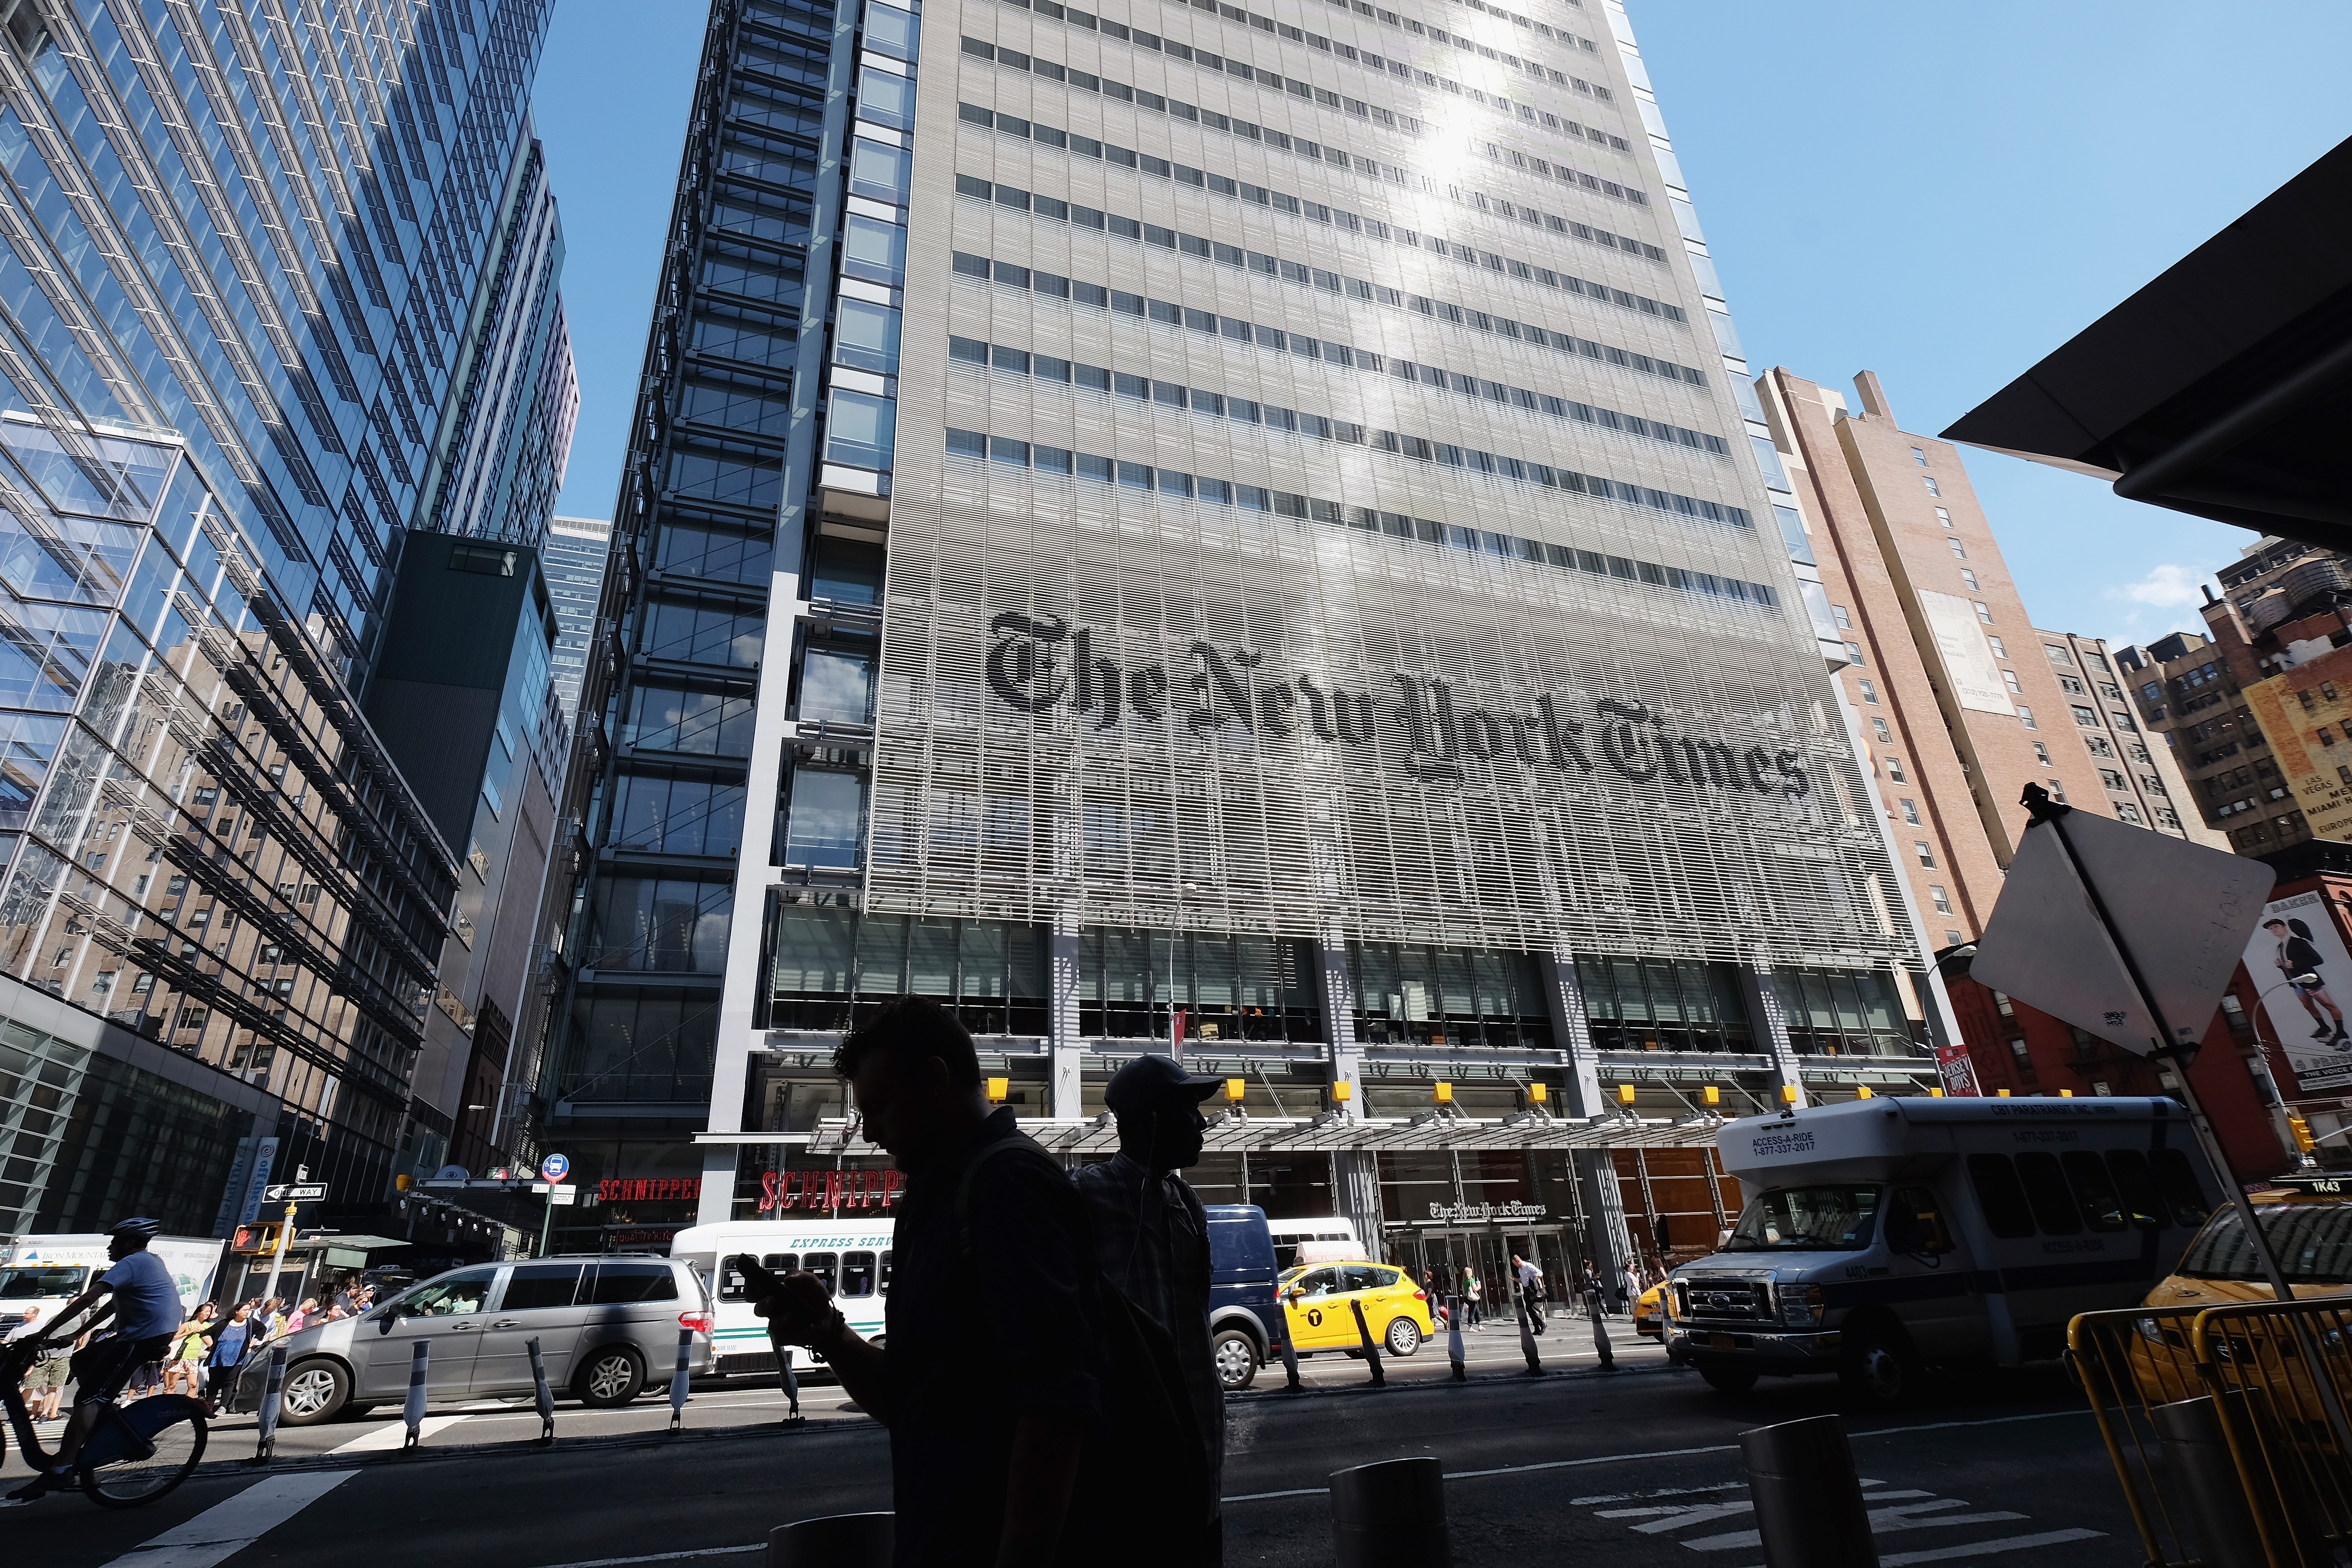 Trump campaign files libel lawsuit against The New York Times over 2019 opinion piece on Russia